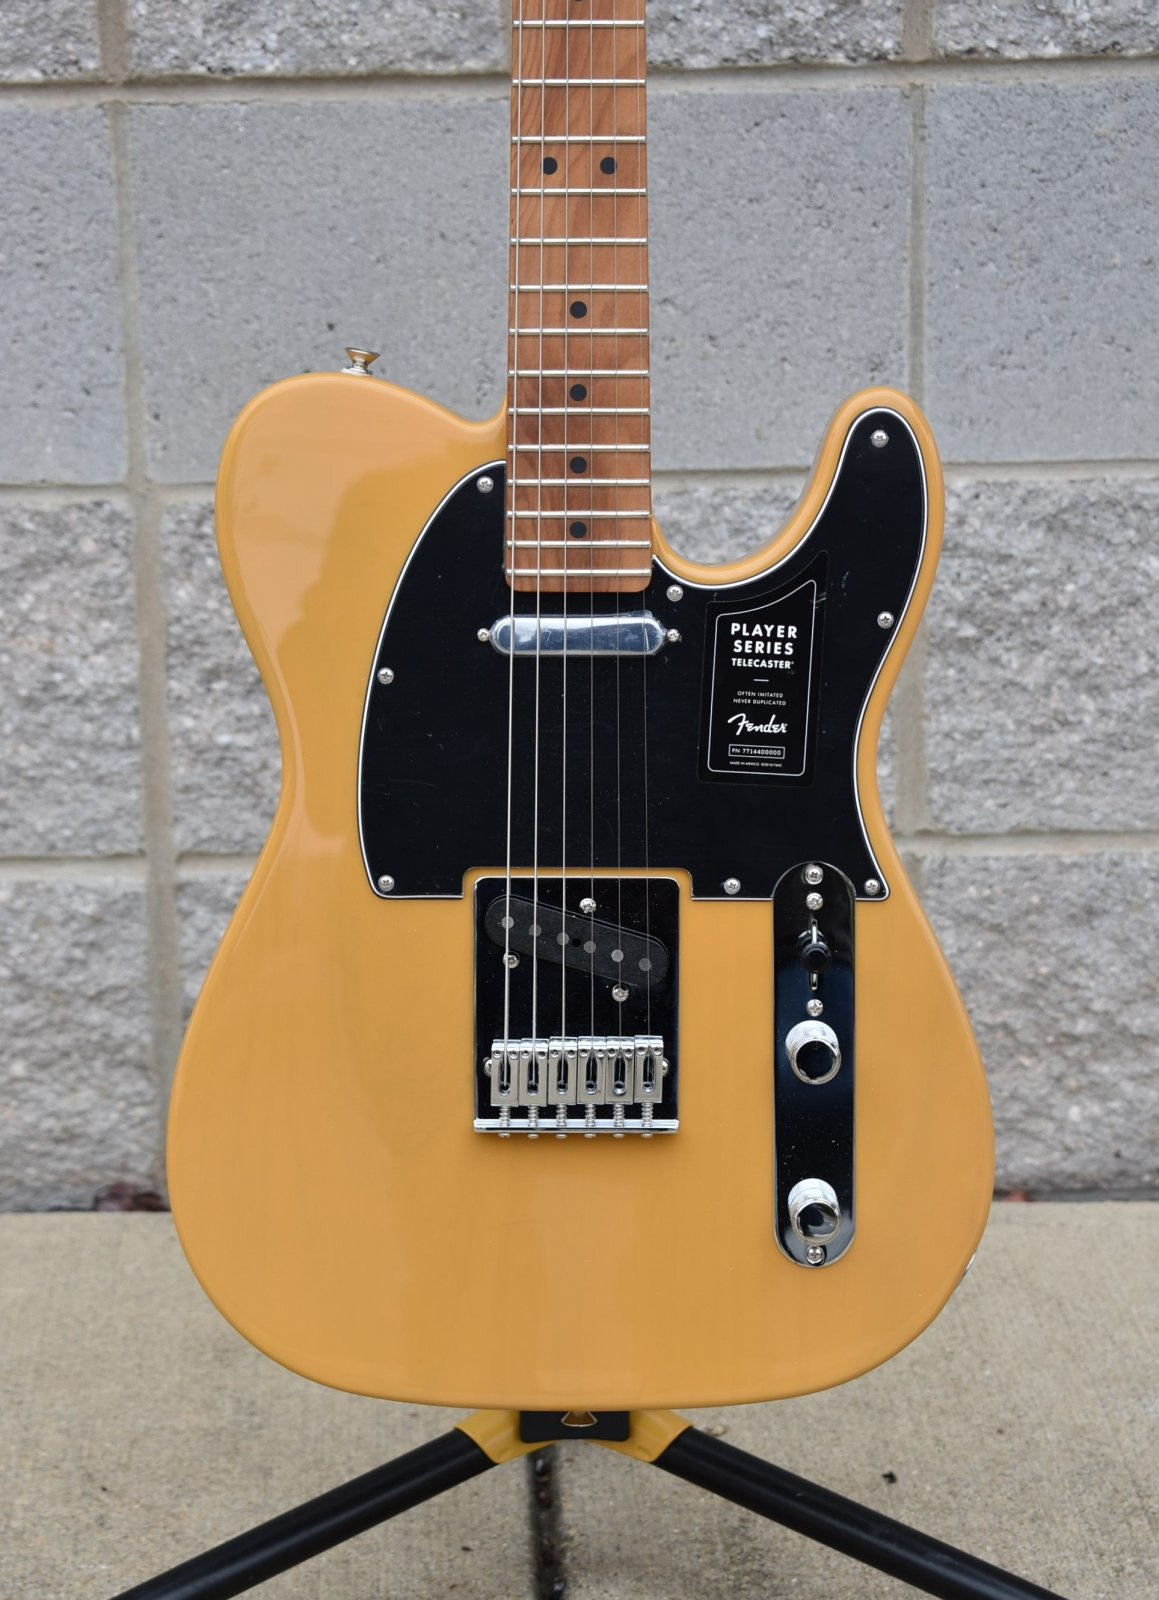 Fender Limited Edition Player Telecaster with Roasted  Maple Neck       Butterscotch Blonde